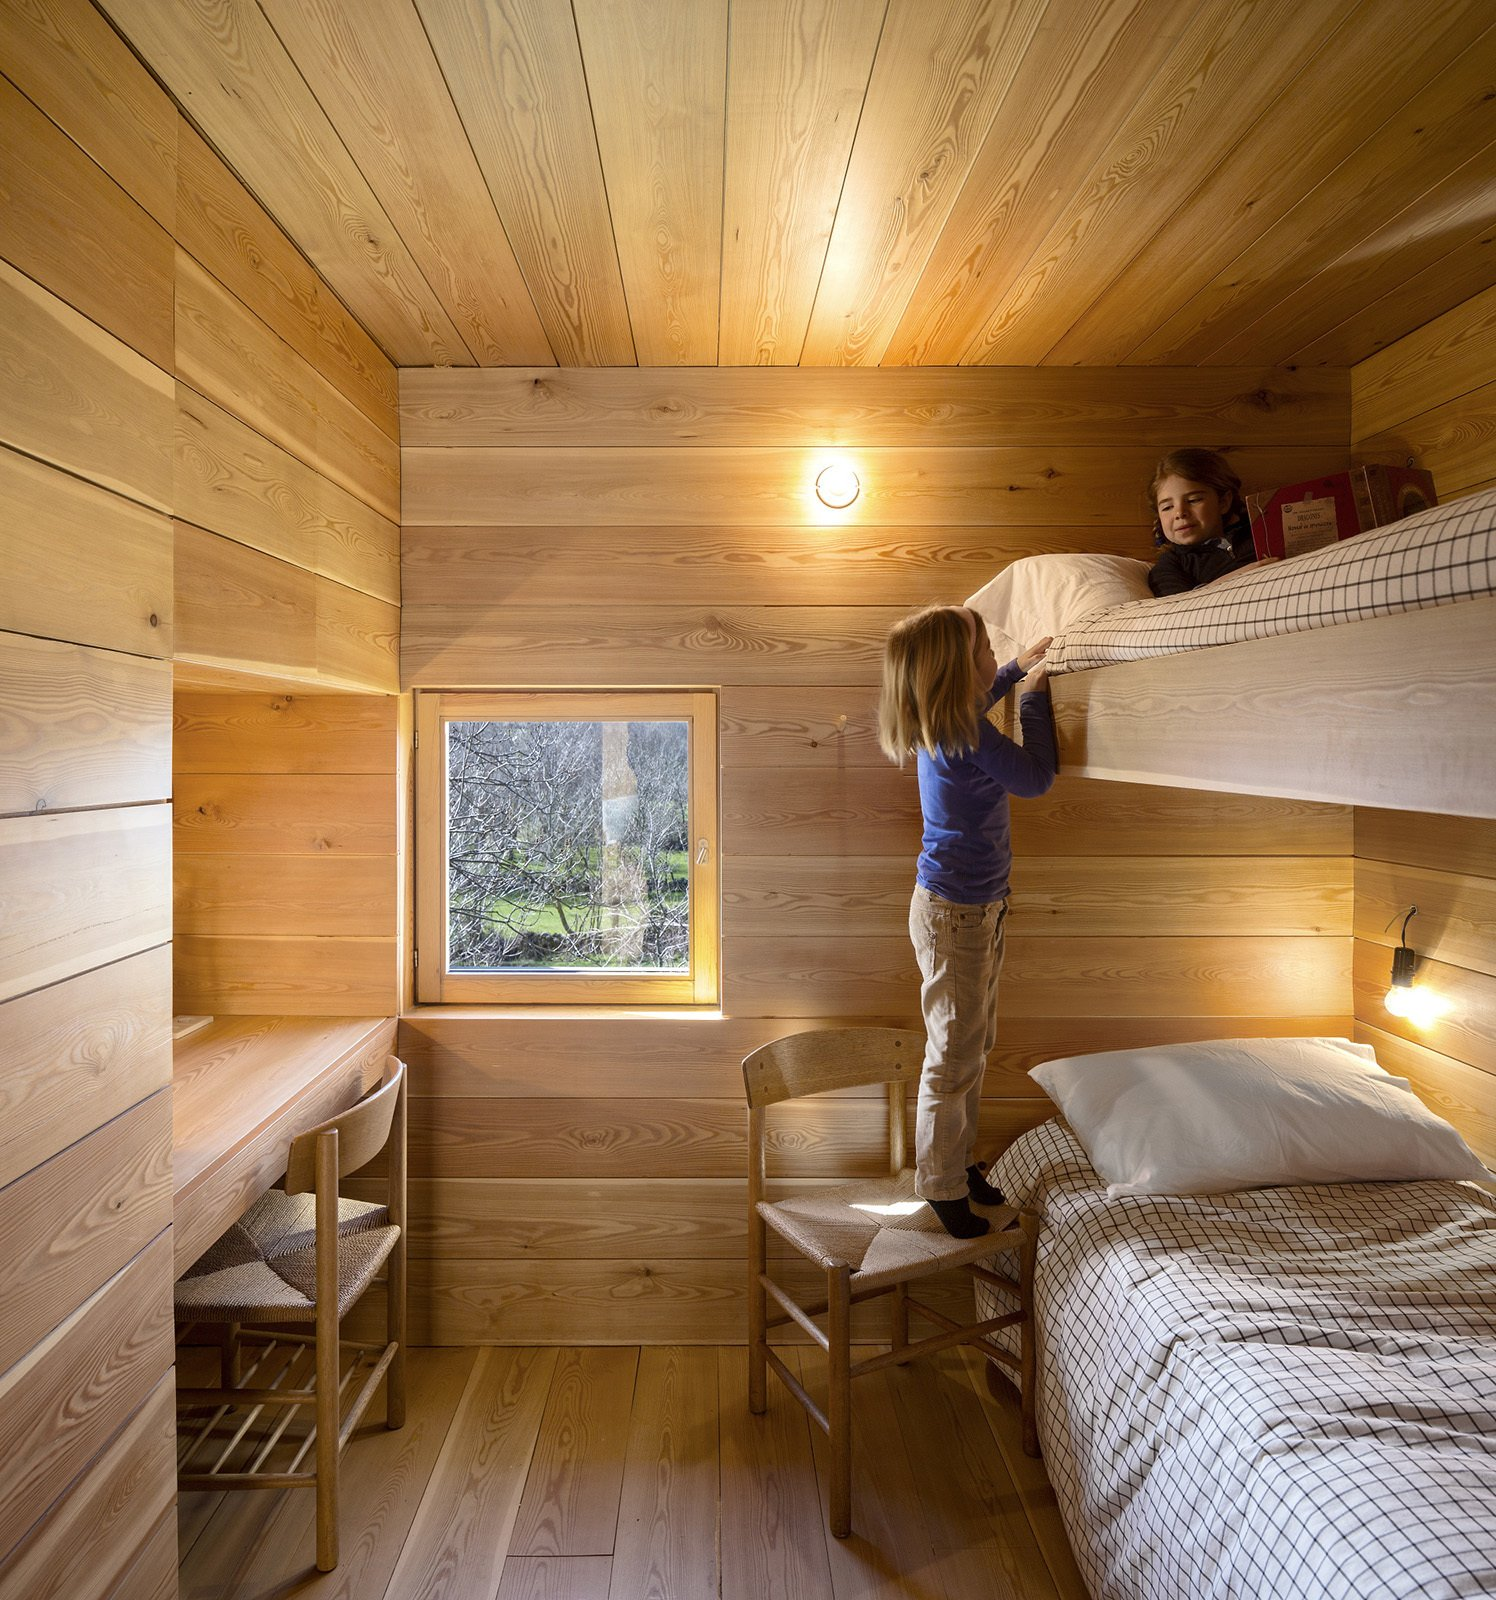 The kids room is outfitted with built-in bunk beds. Tagged: Kids Room, Bedroom, Medium Hardwood Floor, and Bed.  Refuge by Diana Budds from Creative and Cozy Countryside Homes